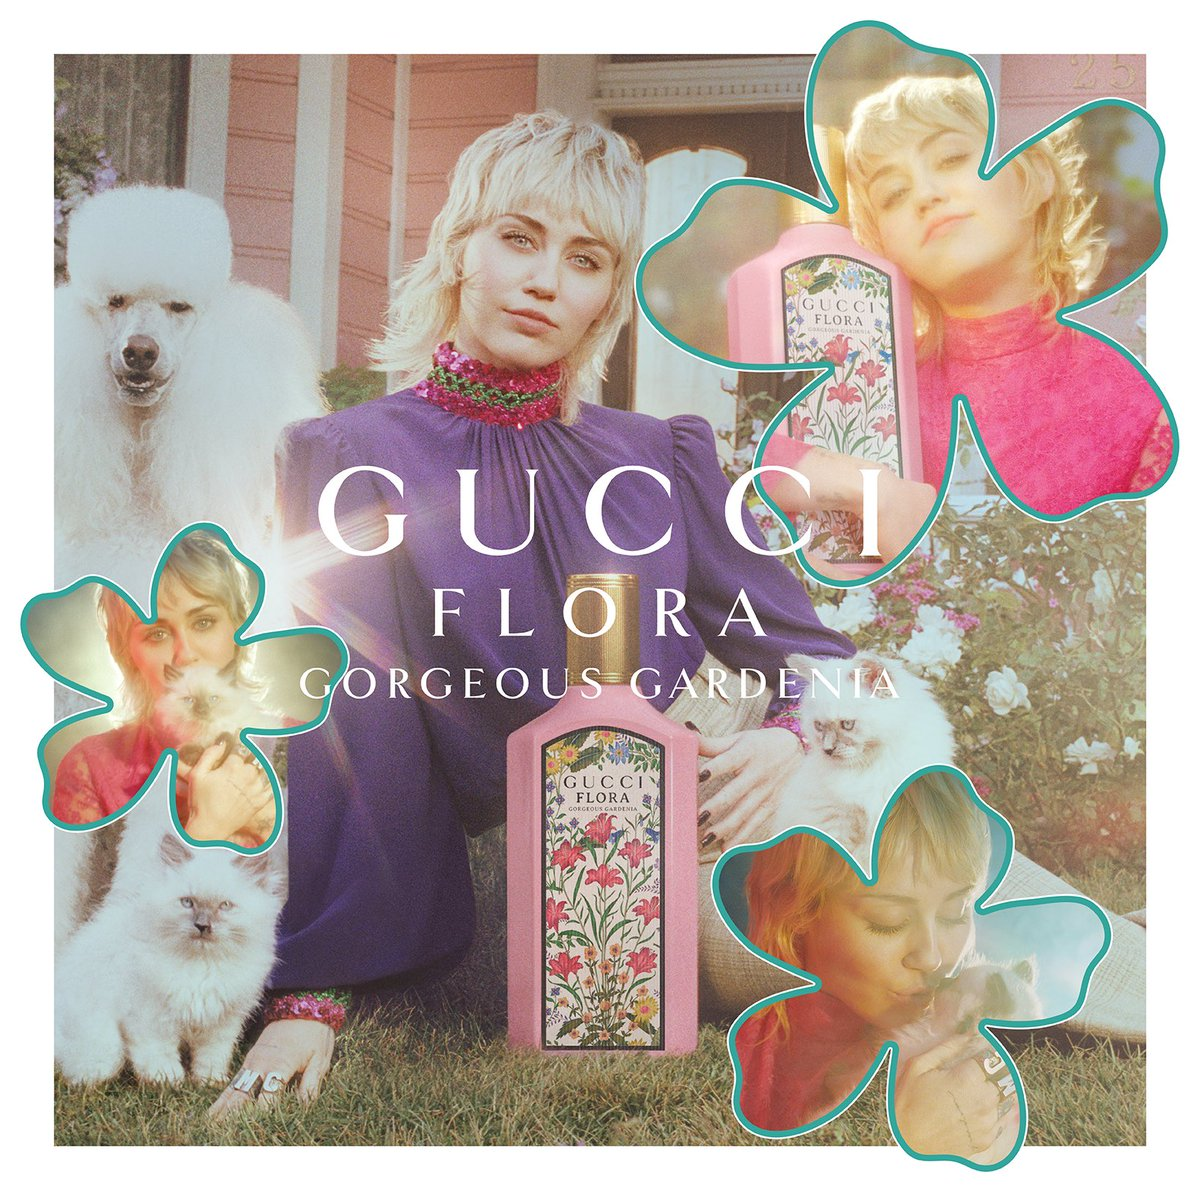 The time has come! So happy to show you Gucci Flora Gorgeous Gardenia's fanciful world! #FloraFantasy @gucci https://t.co/2wwTLmaAHV